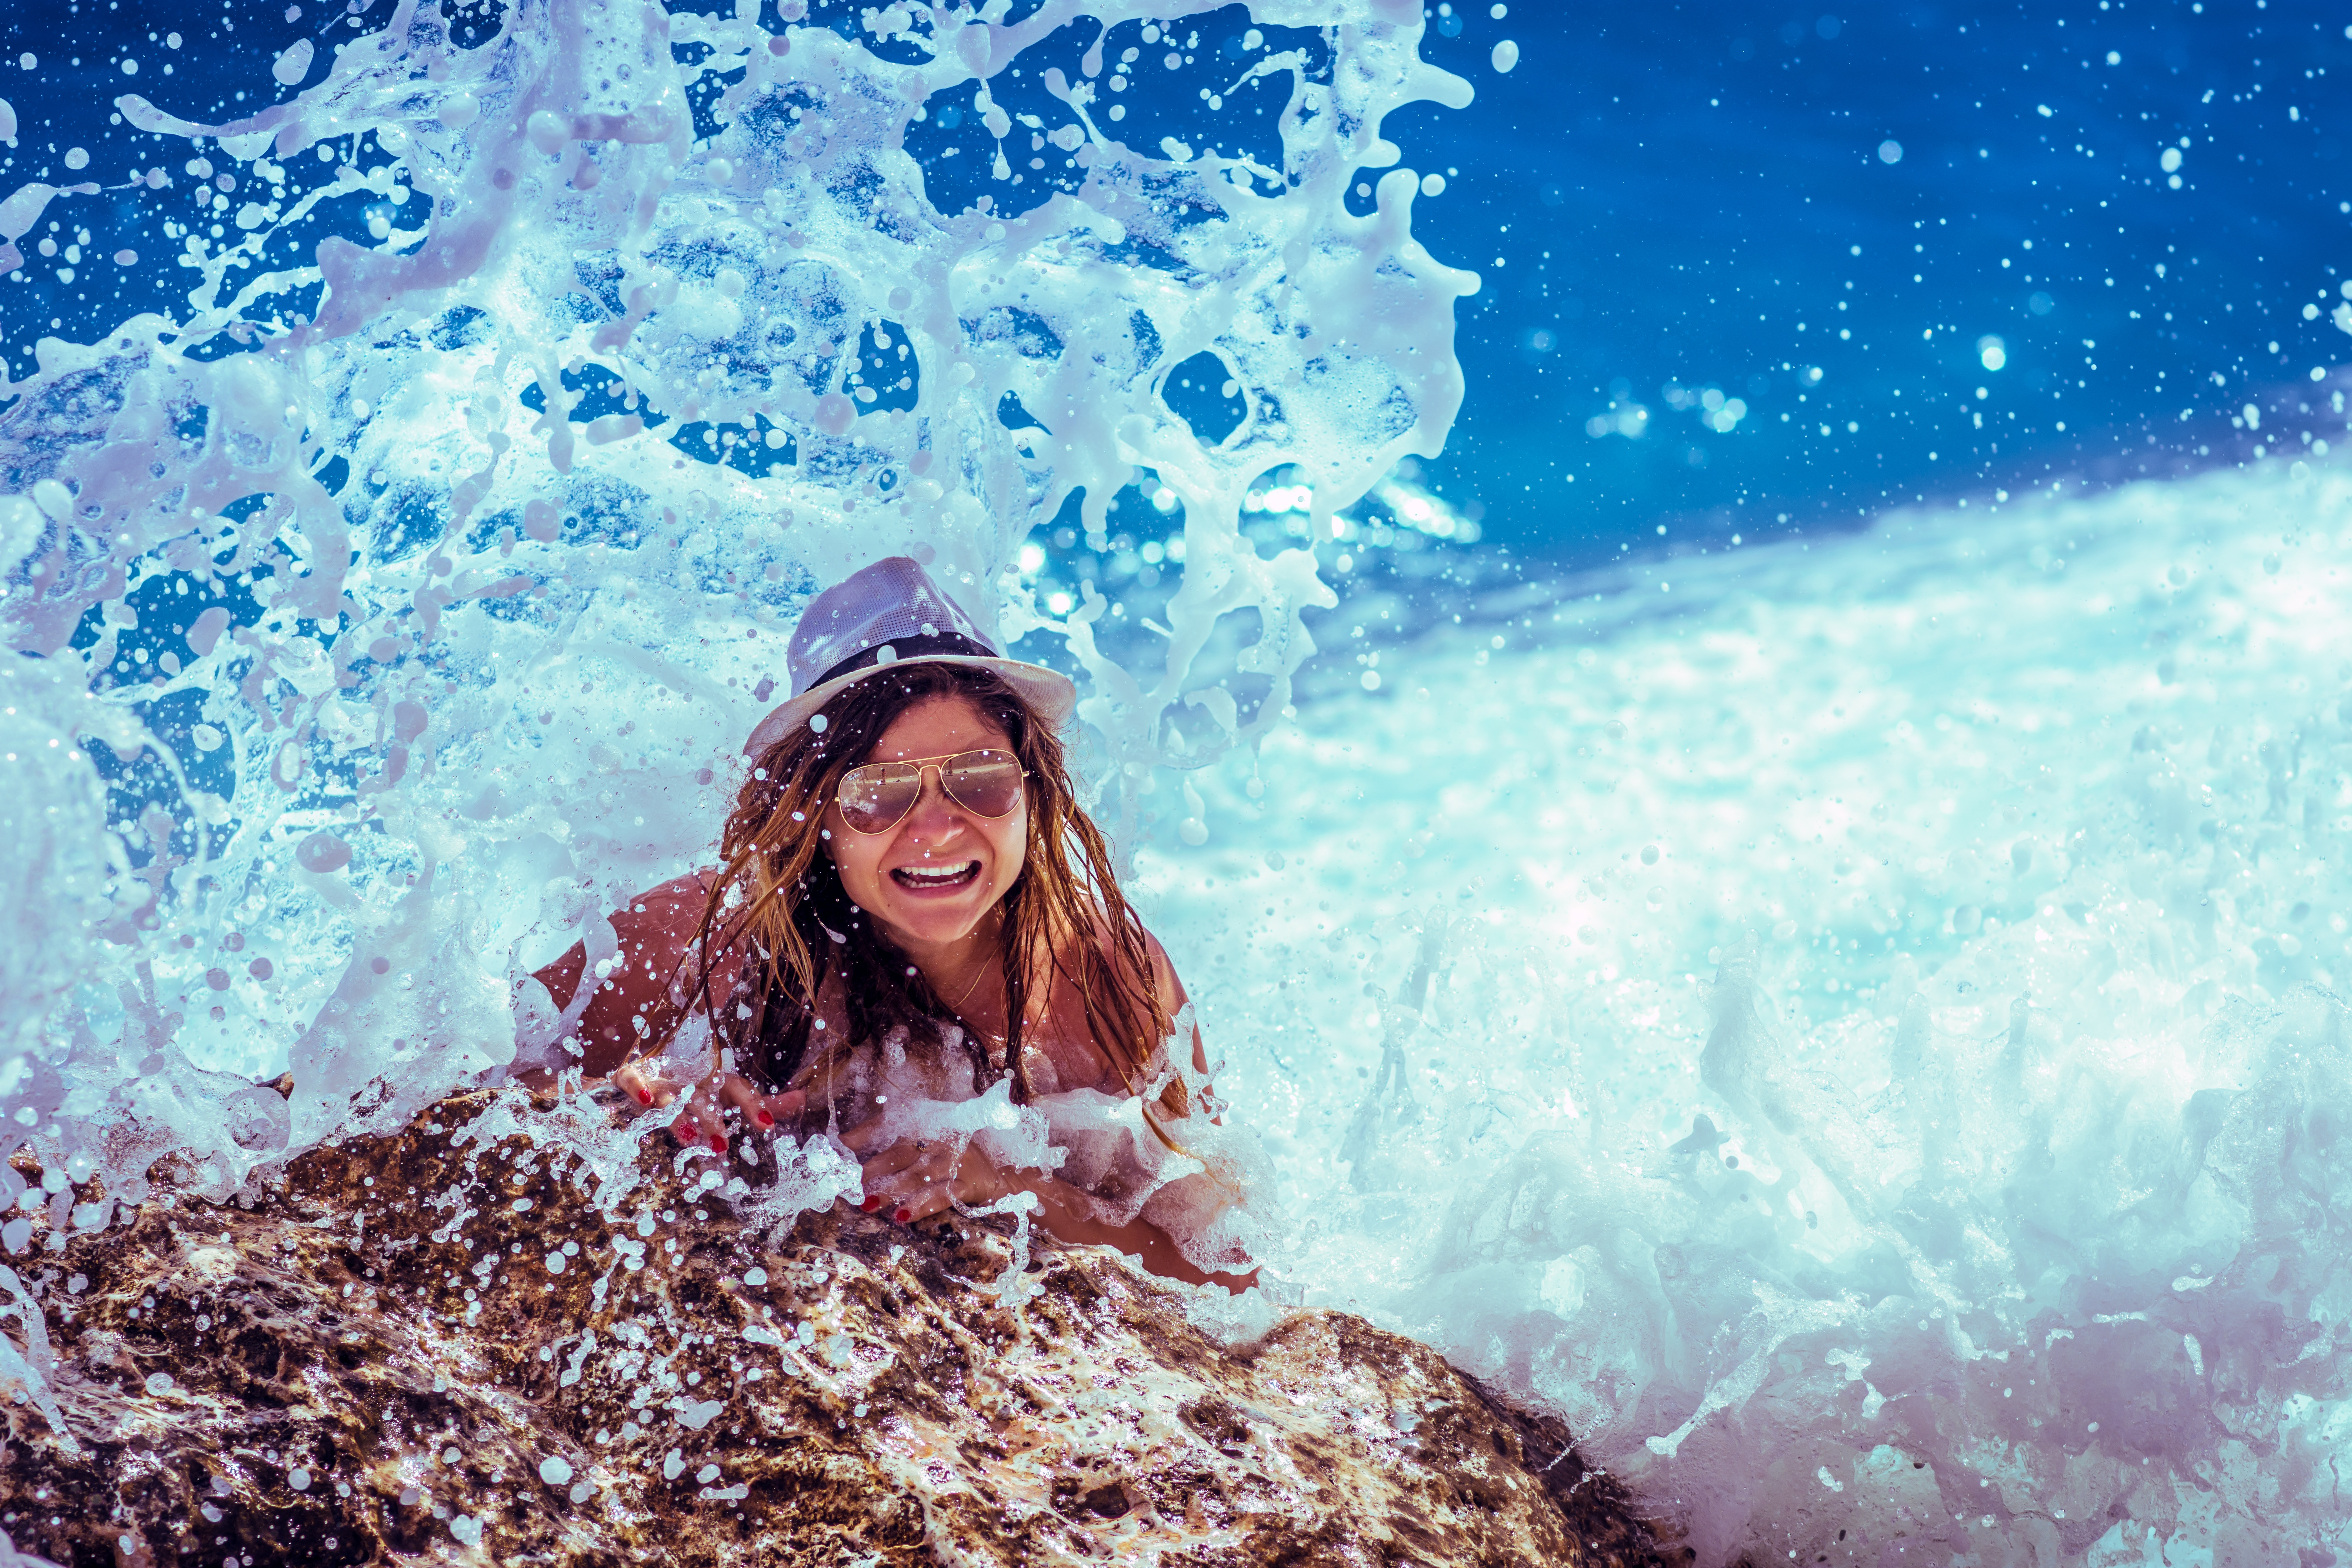 beachy-woman-getting-splashed-by-big-wave